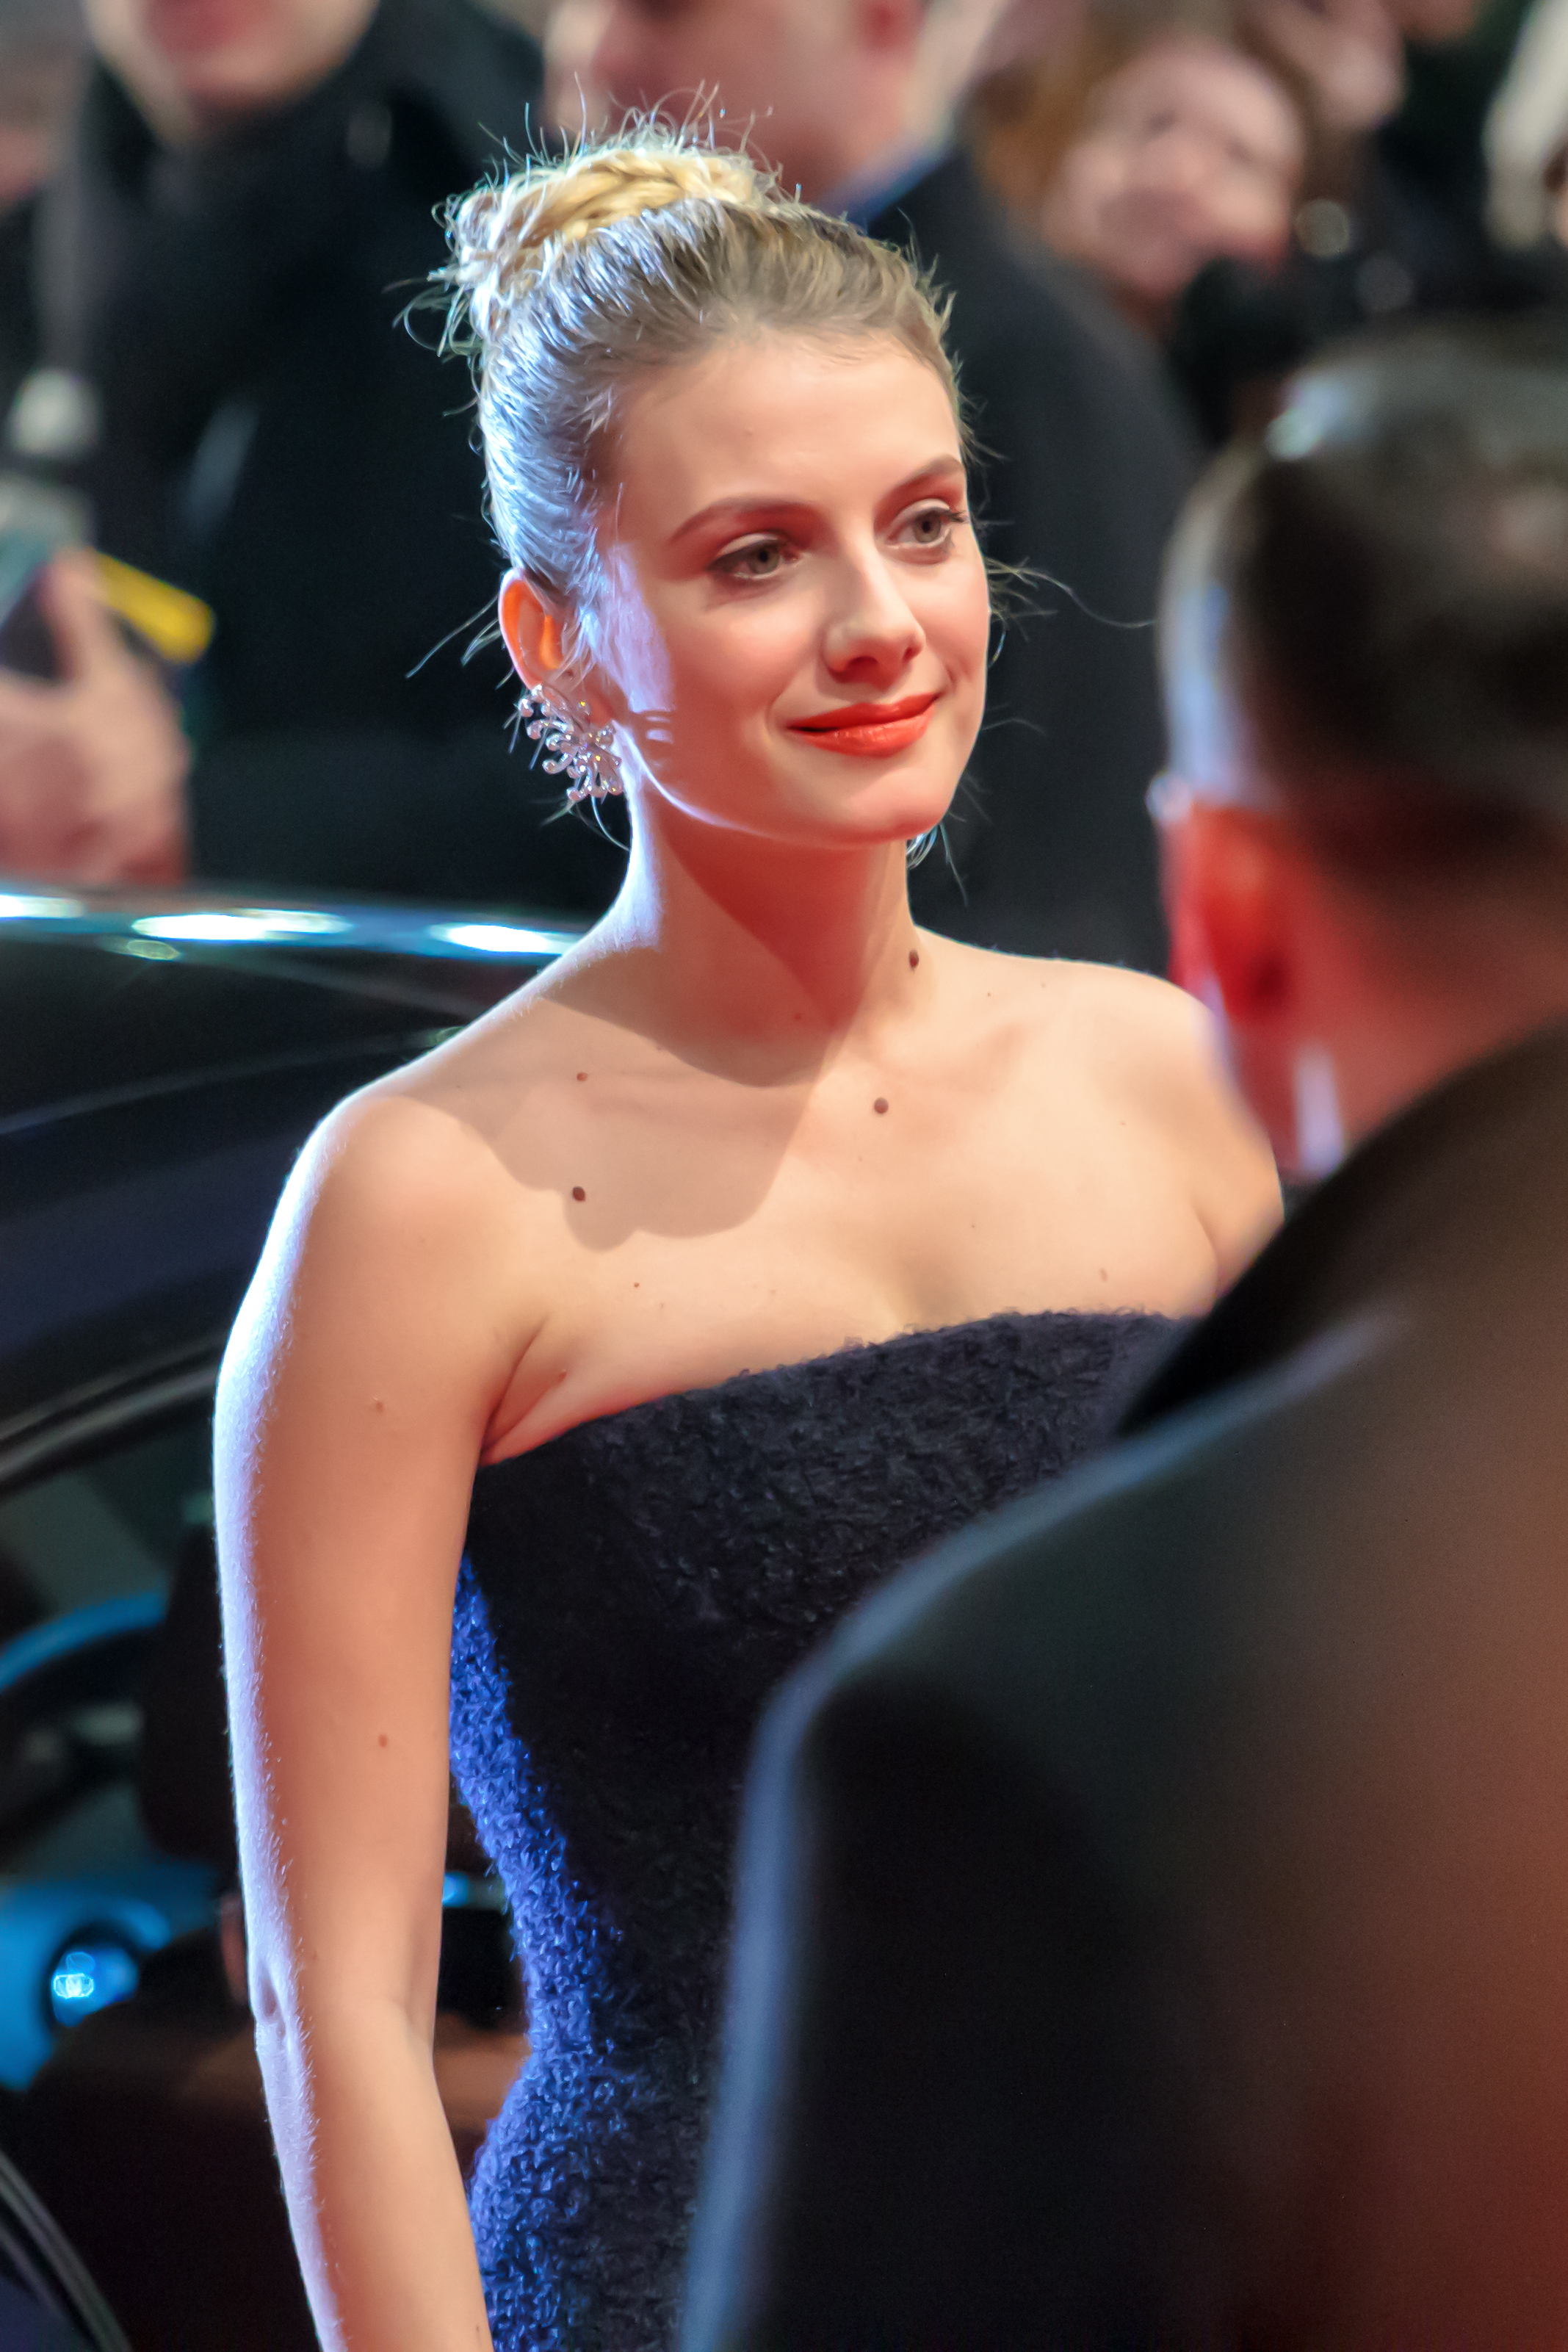 List of roles and awards of Mélanie Laurent - Wikipedia